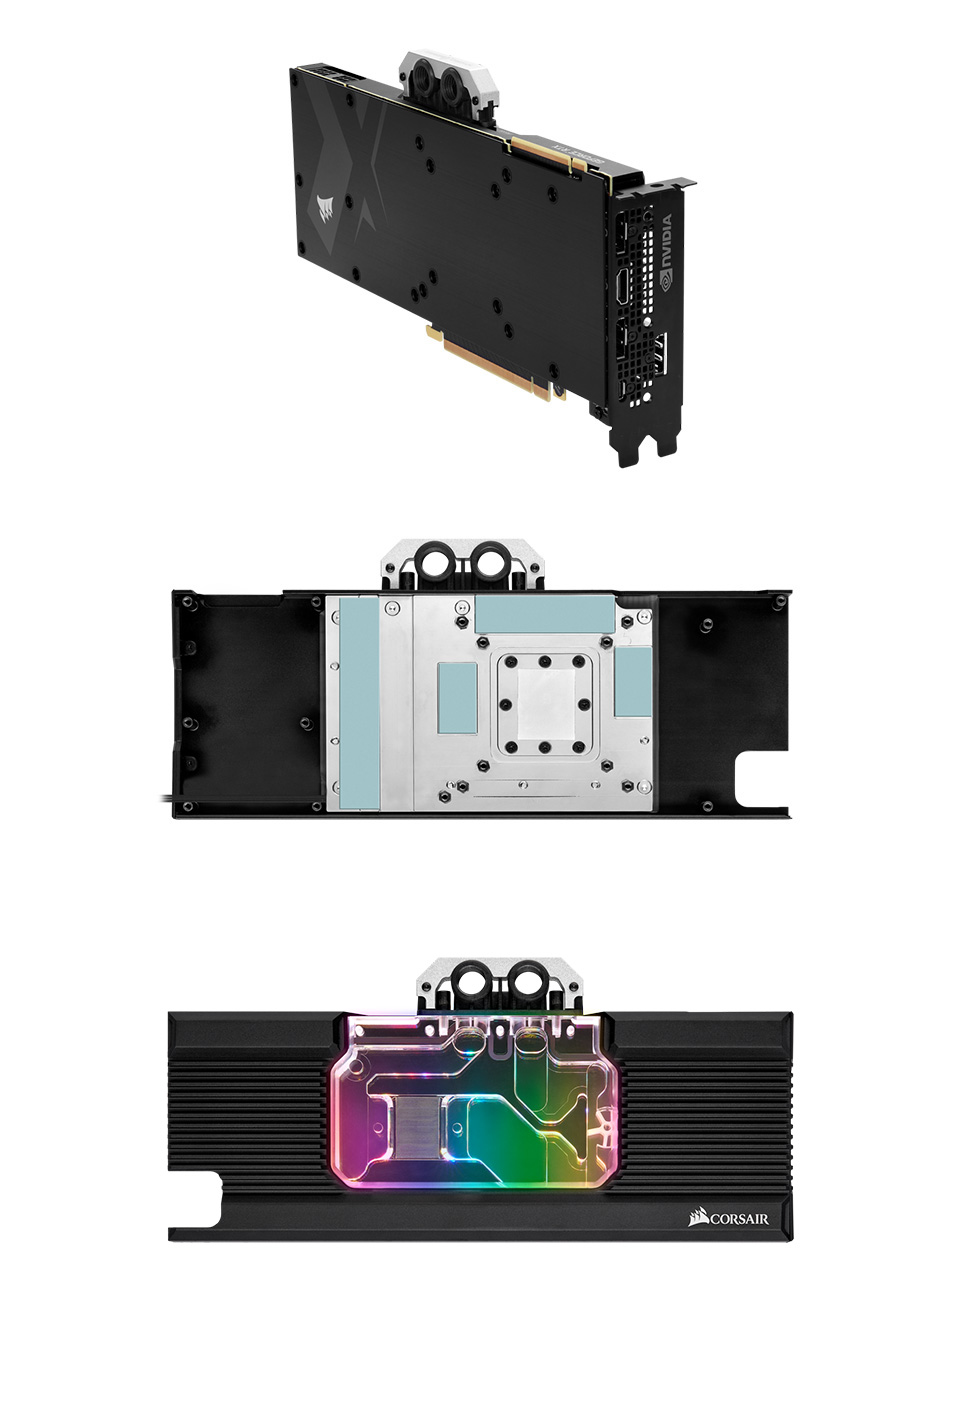 Corsair Hydro X Series XG7 2080 FE RGB GPU Water Block product